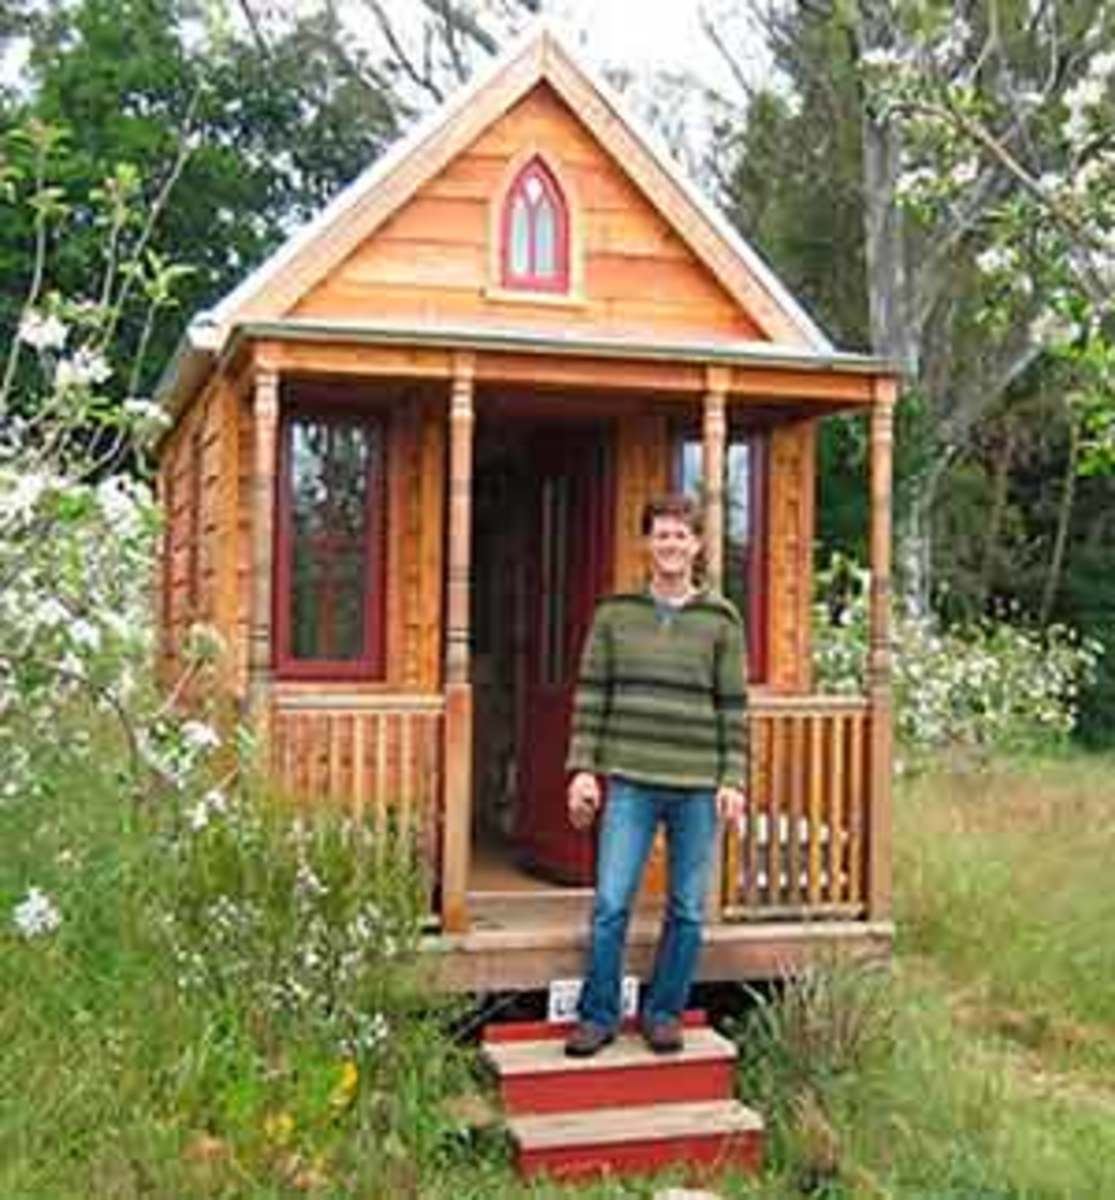 Jay Schaeffer of Tumbleweed Tiny Homes